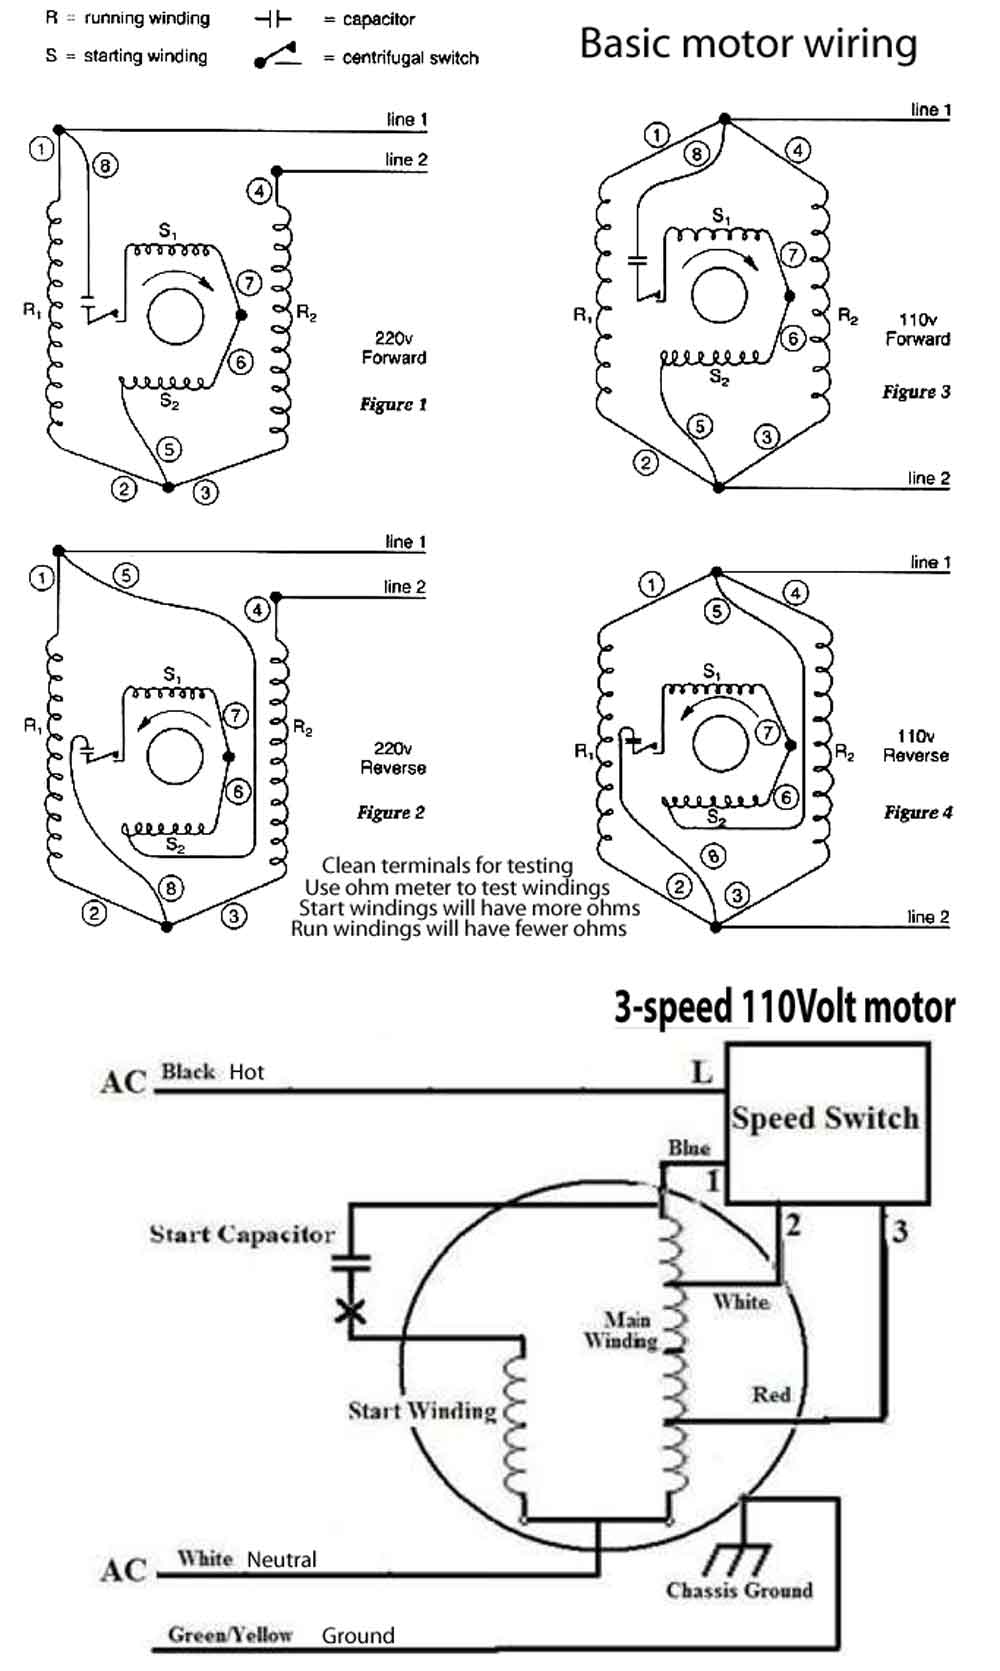 3 Speed Ceiling Fan Motor Wiring Diagram Will Be A Way Hunter How To Wire Switch Rh Waterheatertimer Org 4